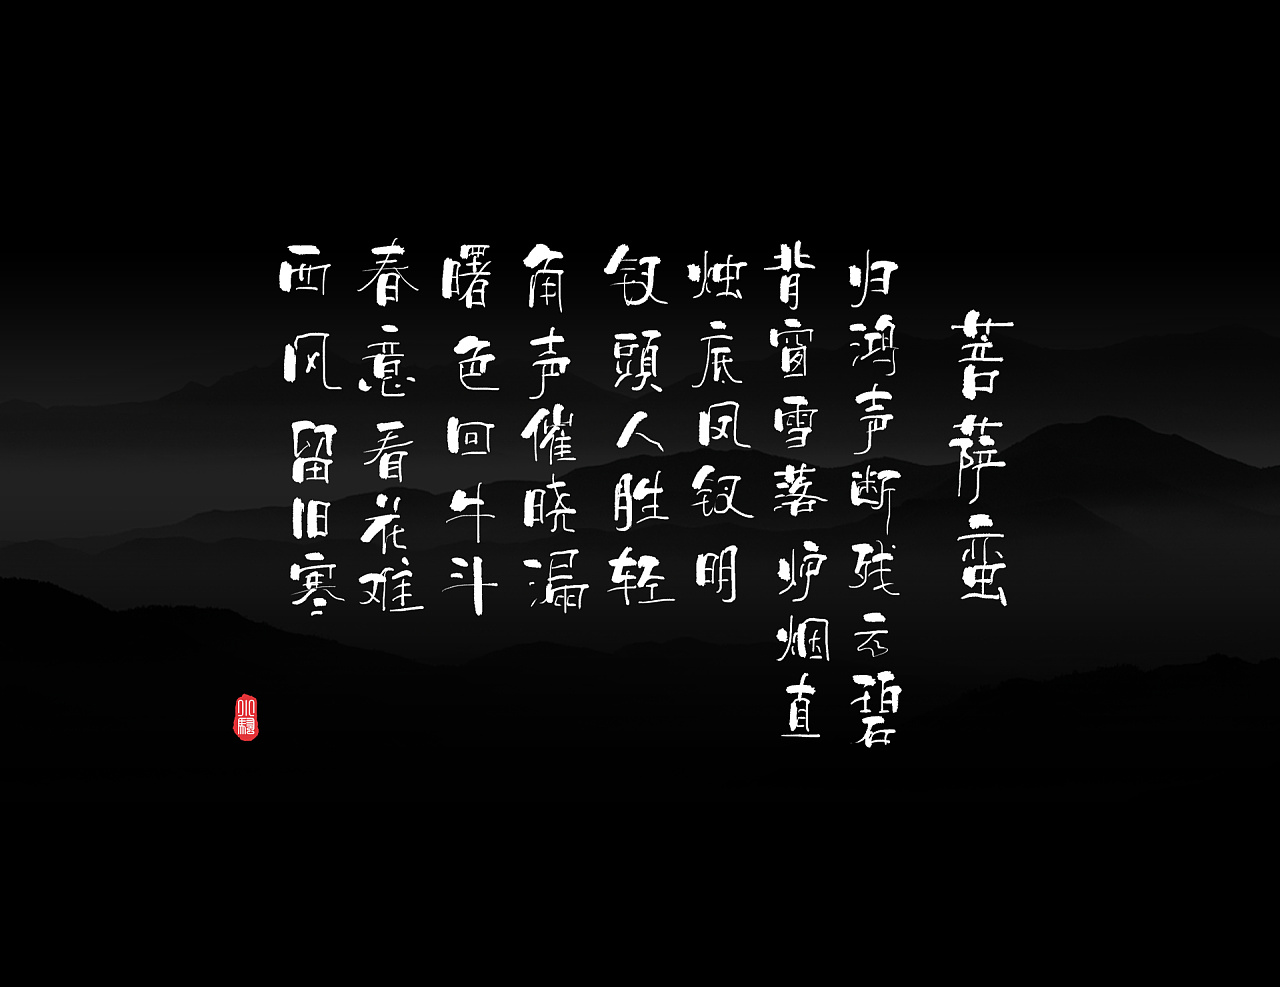 chinesefontdesign.com 2018 02 04 12 37 58 071673 50P Li Sao of Tang Song style Chinese Design Inspiration